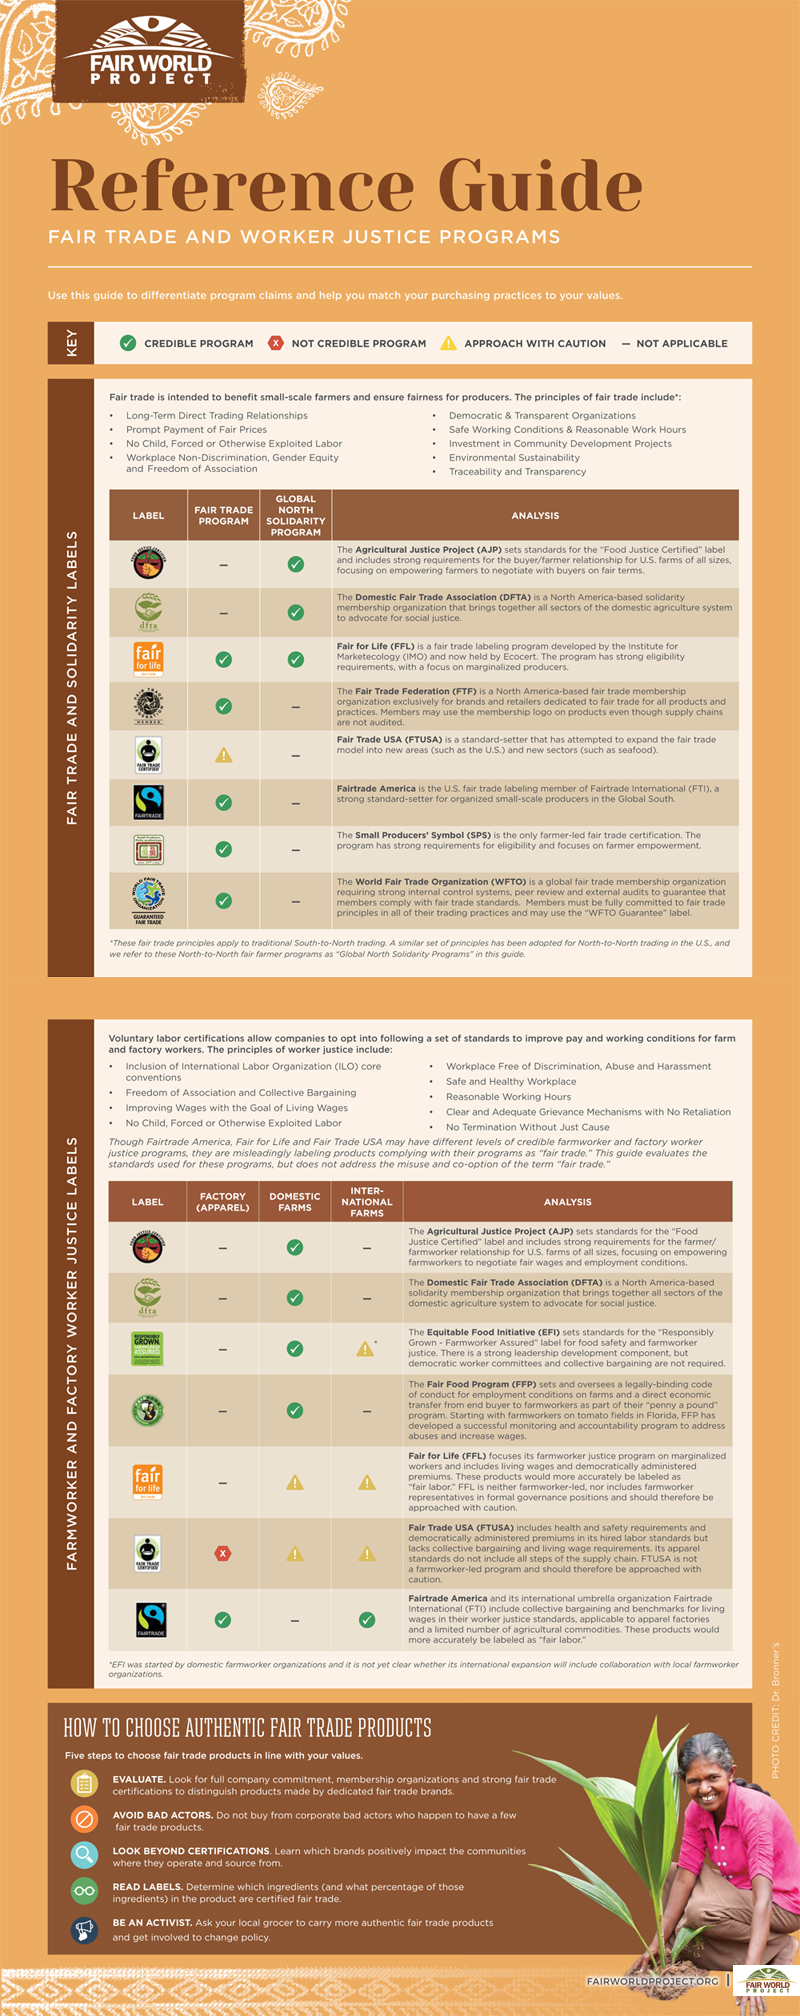 For a Better World Issue 17 Reference Guide